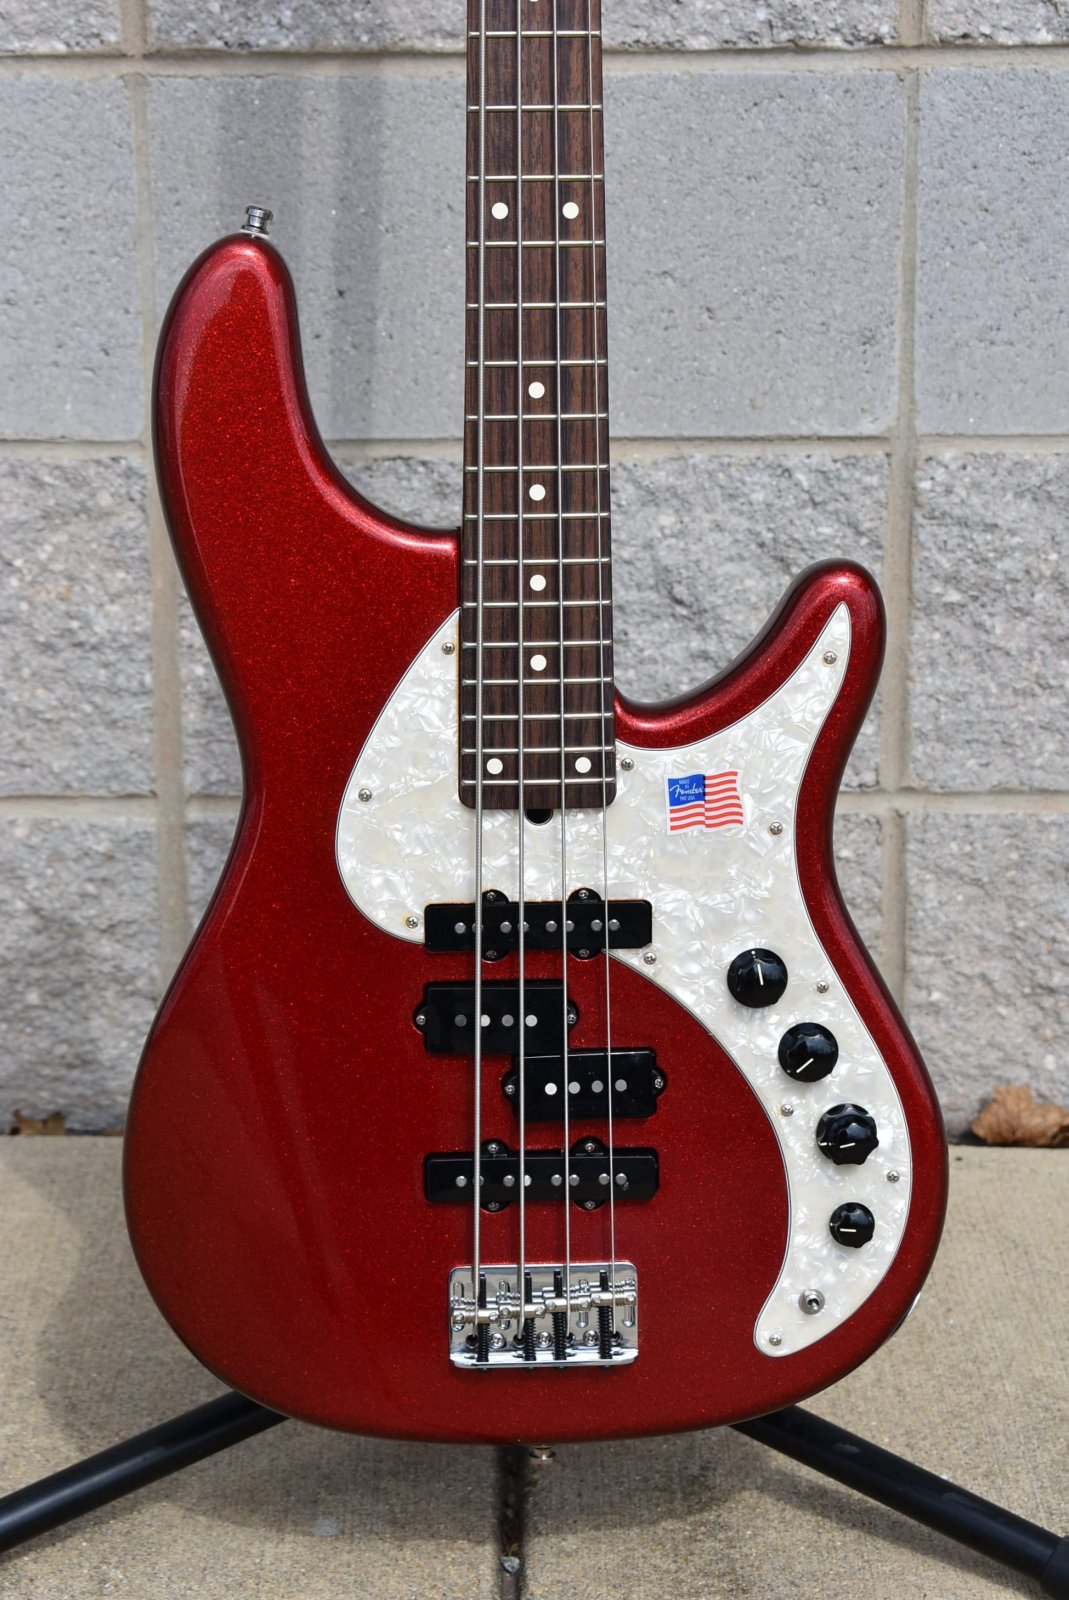 2009 Fender Stu Hamm Urge Bass II - Red Sparkle Metallic